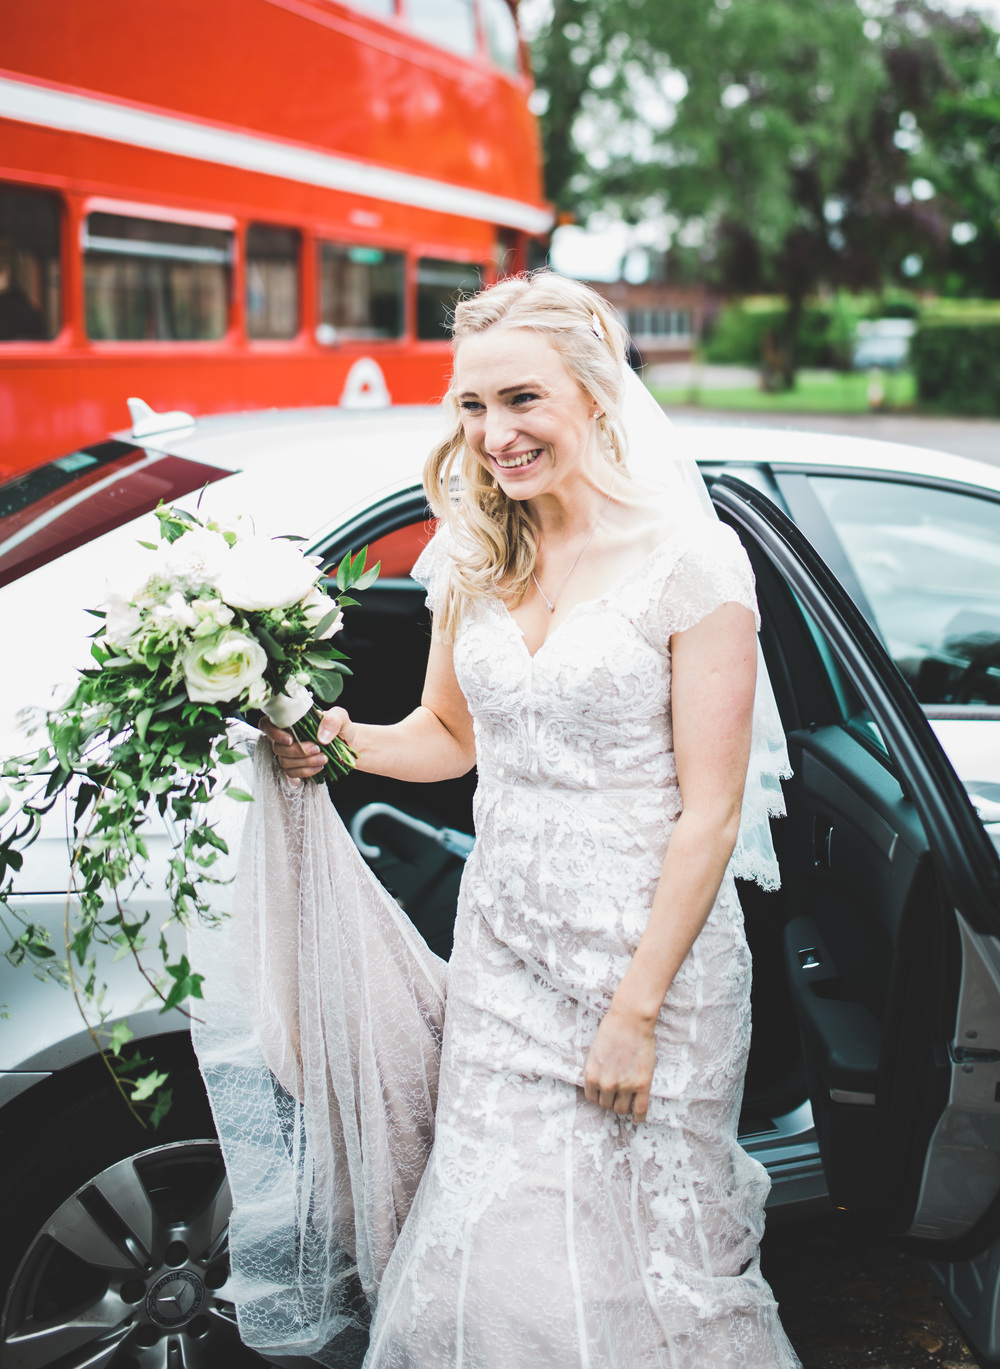 The beautiful bride stepping out of the wedding car at The Oak Tree of Peover.